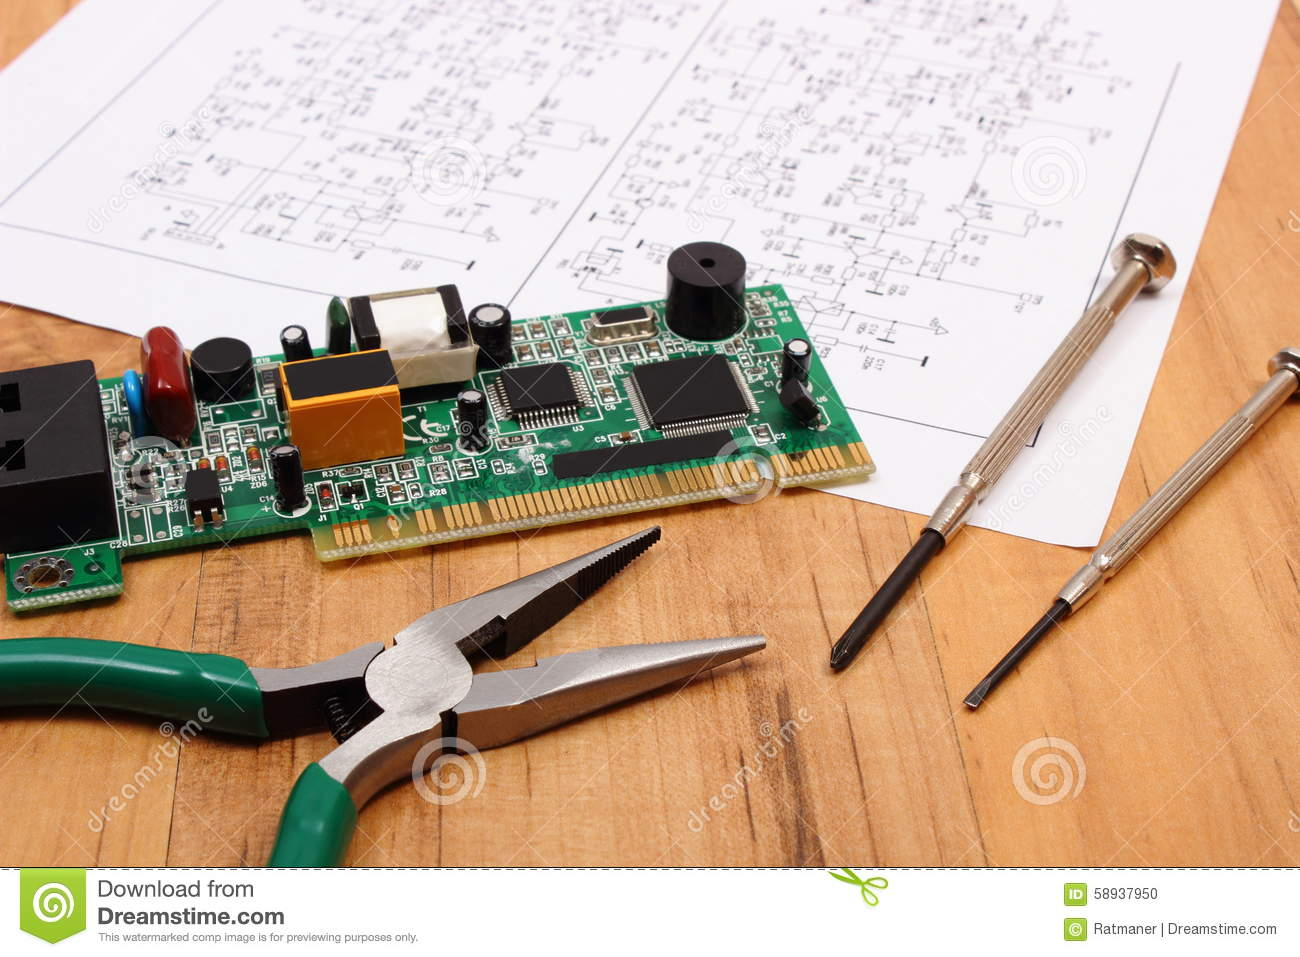 Construction Technology Tools : Printed circuit board precision tools and diagram of